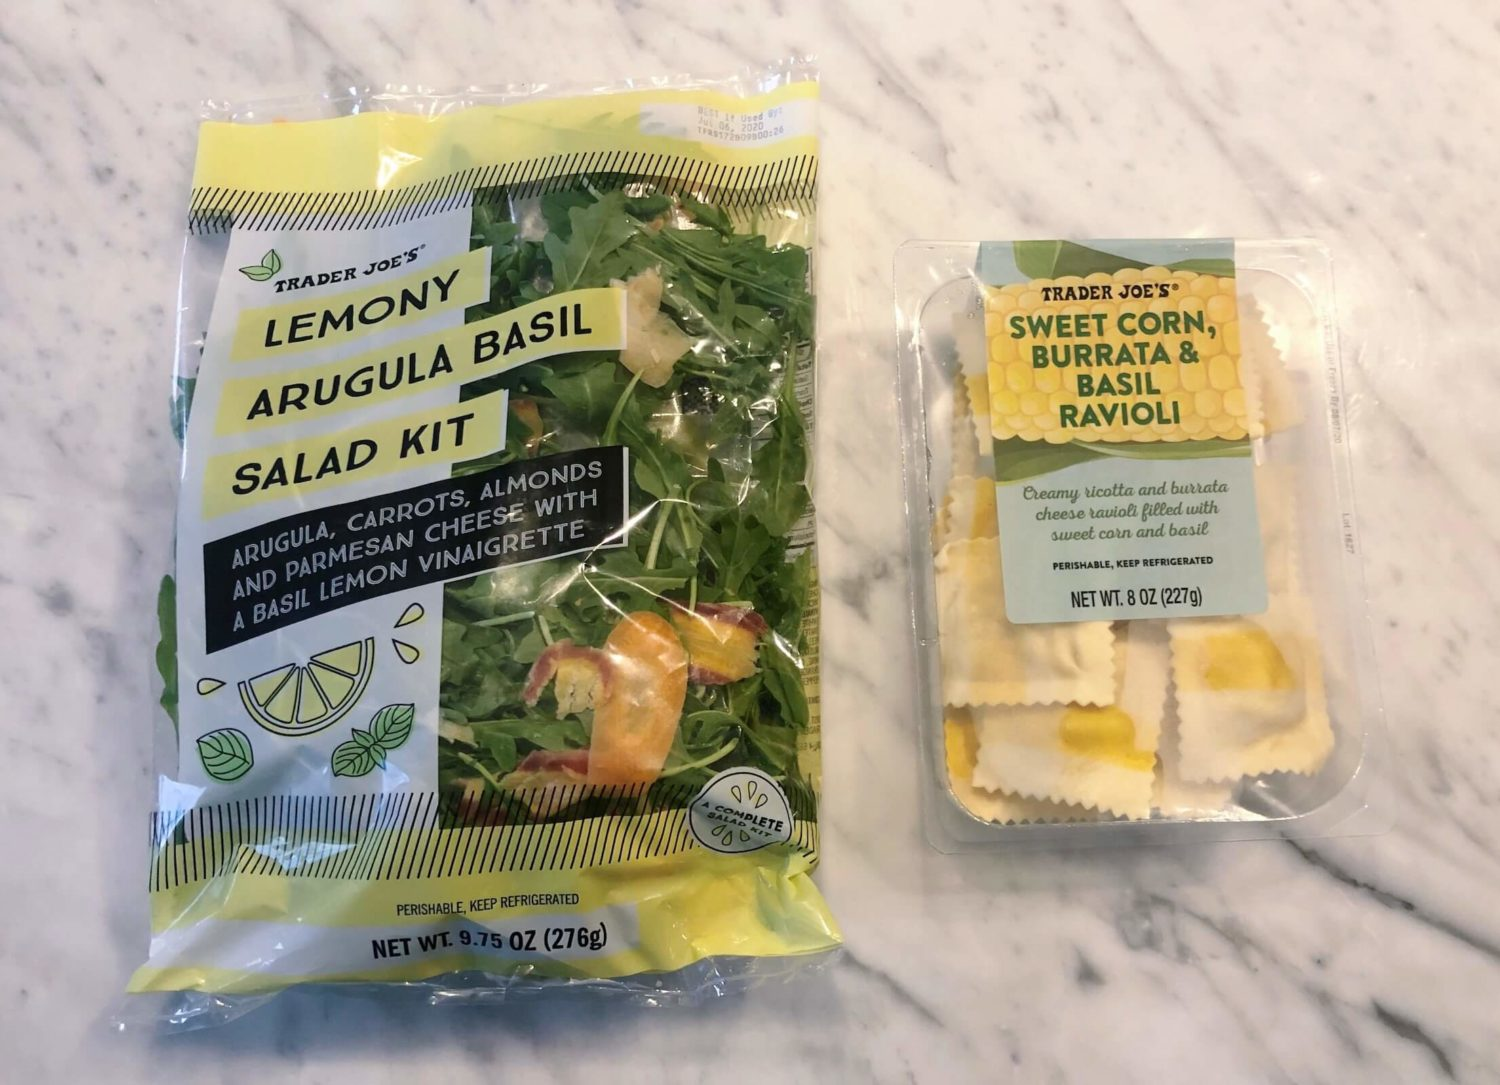 交易员乔's lemony arugula salad meal idea